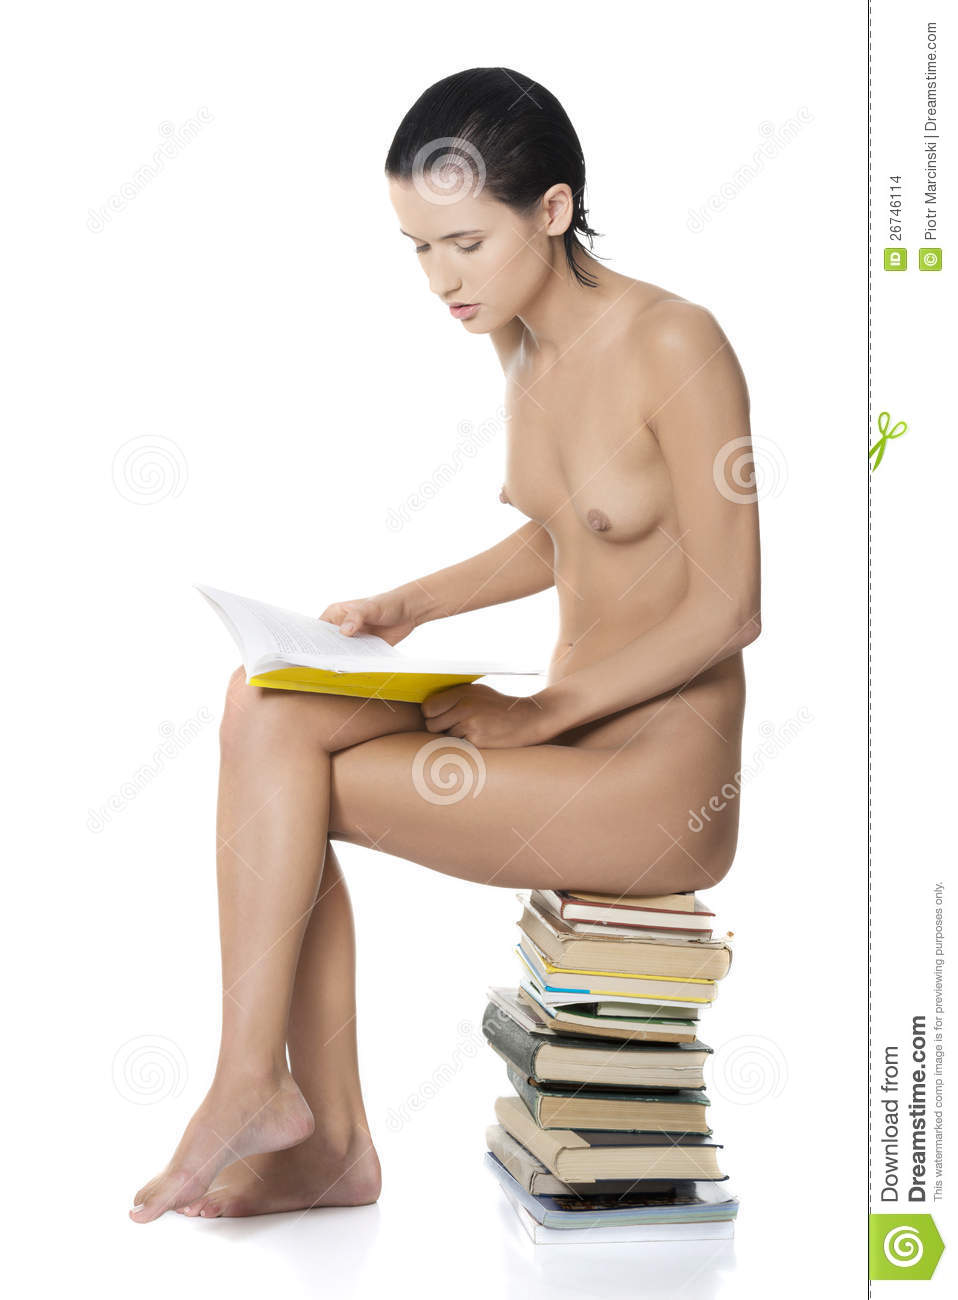 Naked women with books